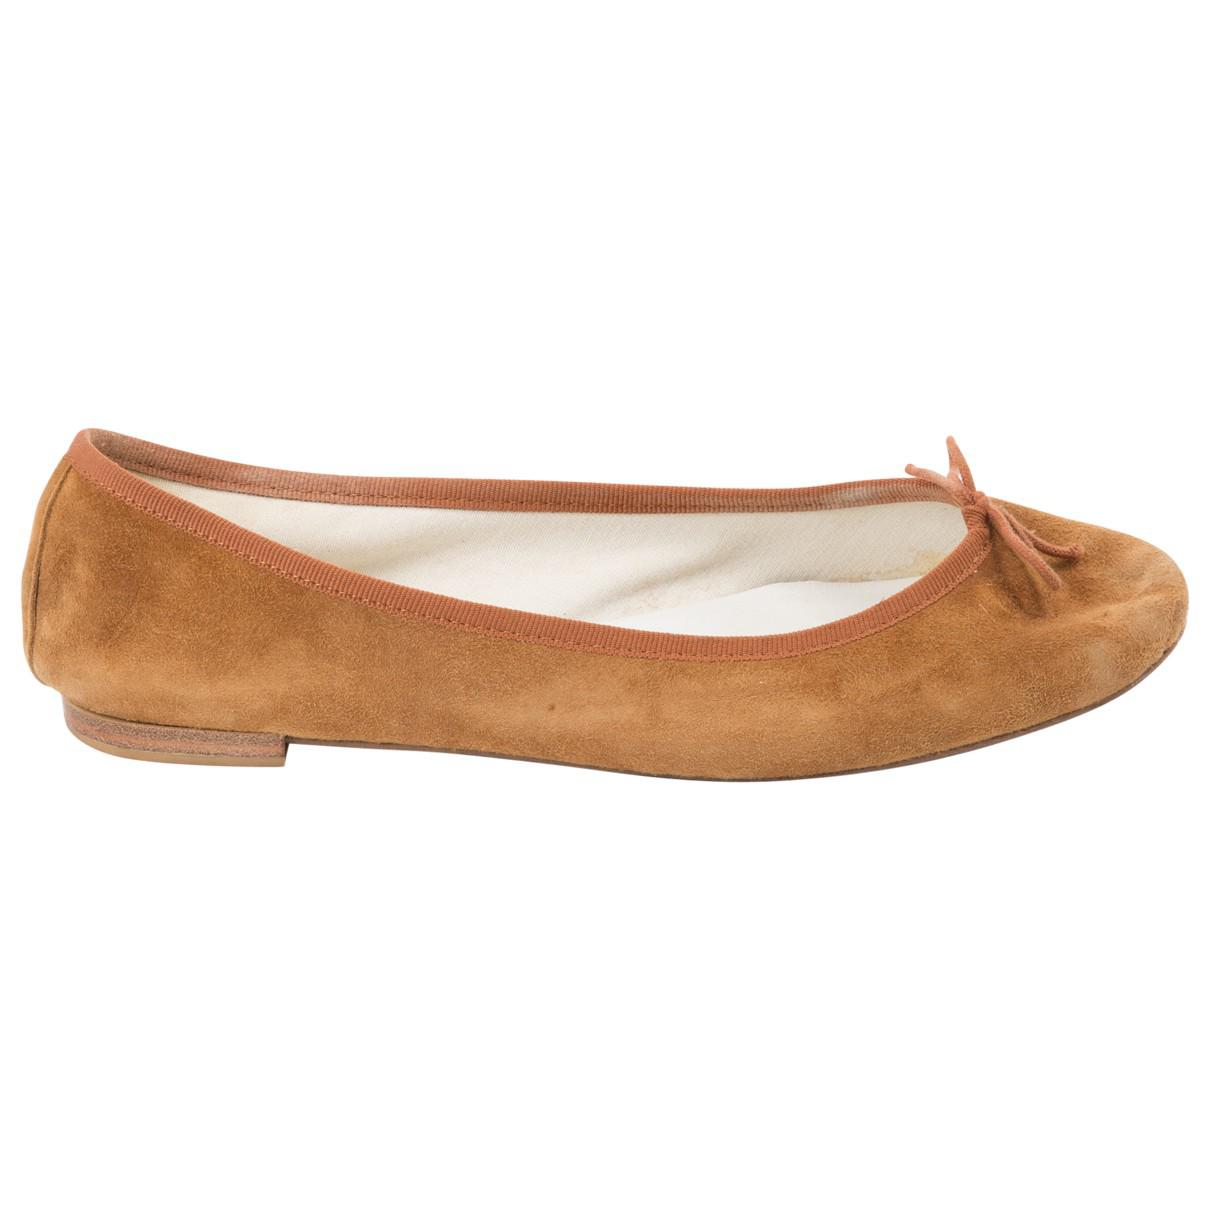 Pre-owned - Leather ballet flats Repetto FKY6D